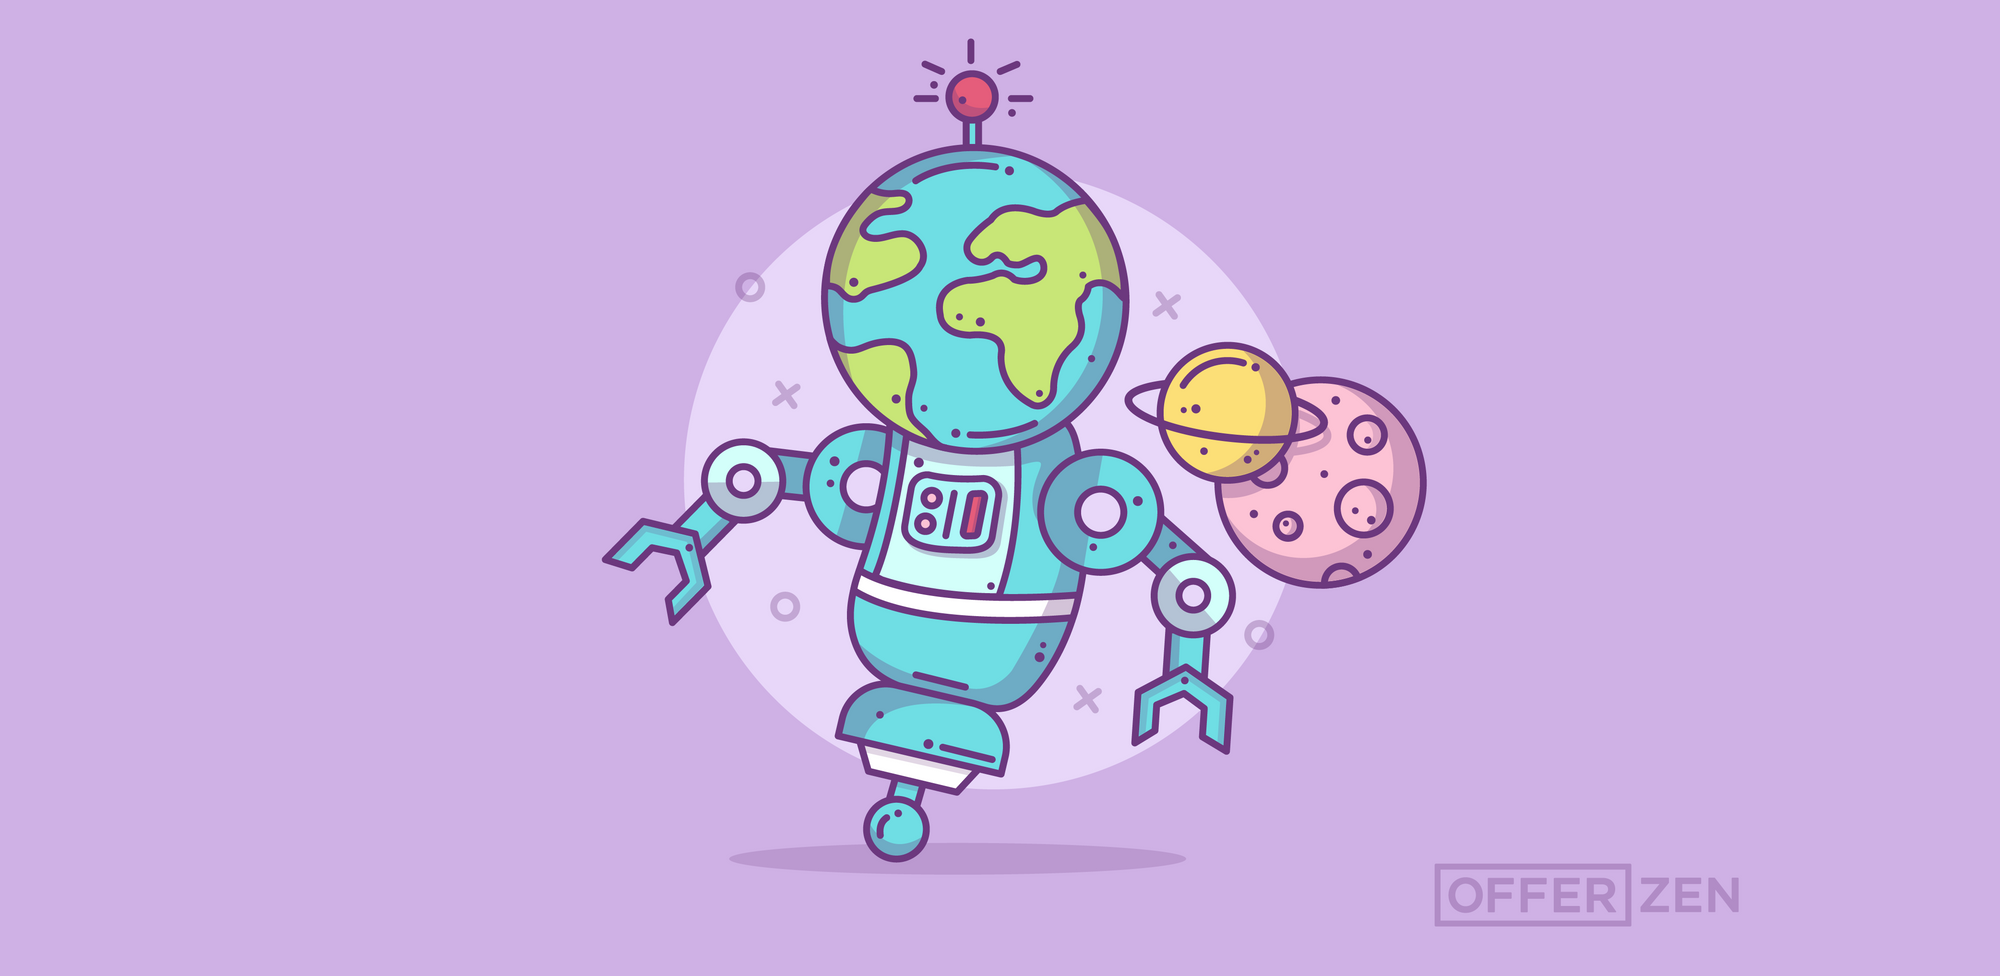 Ashi-Krishnan_Ai-robot-with-earth-globe-head_inner-article-02